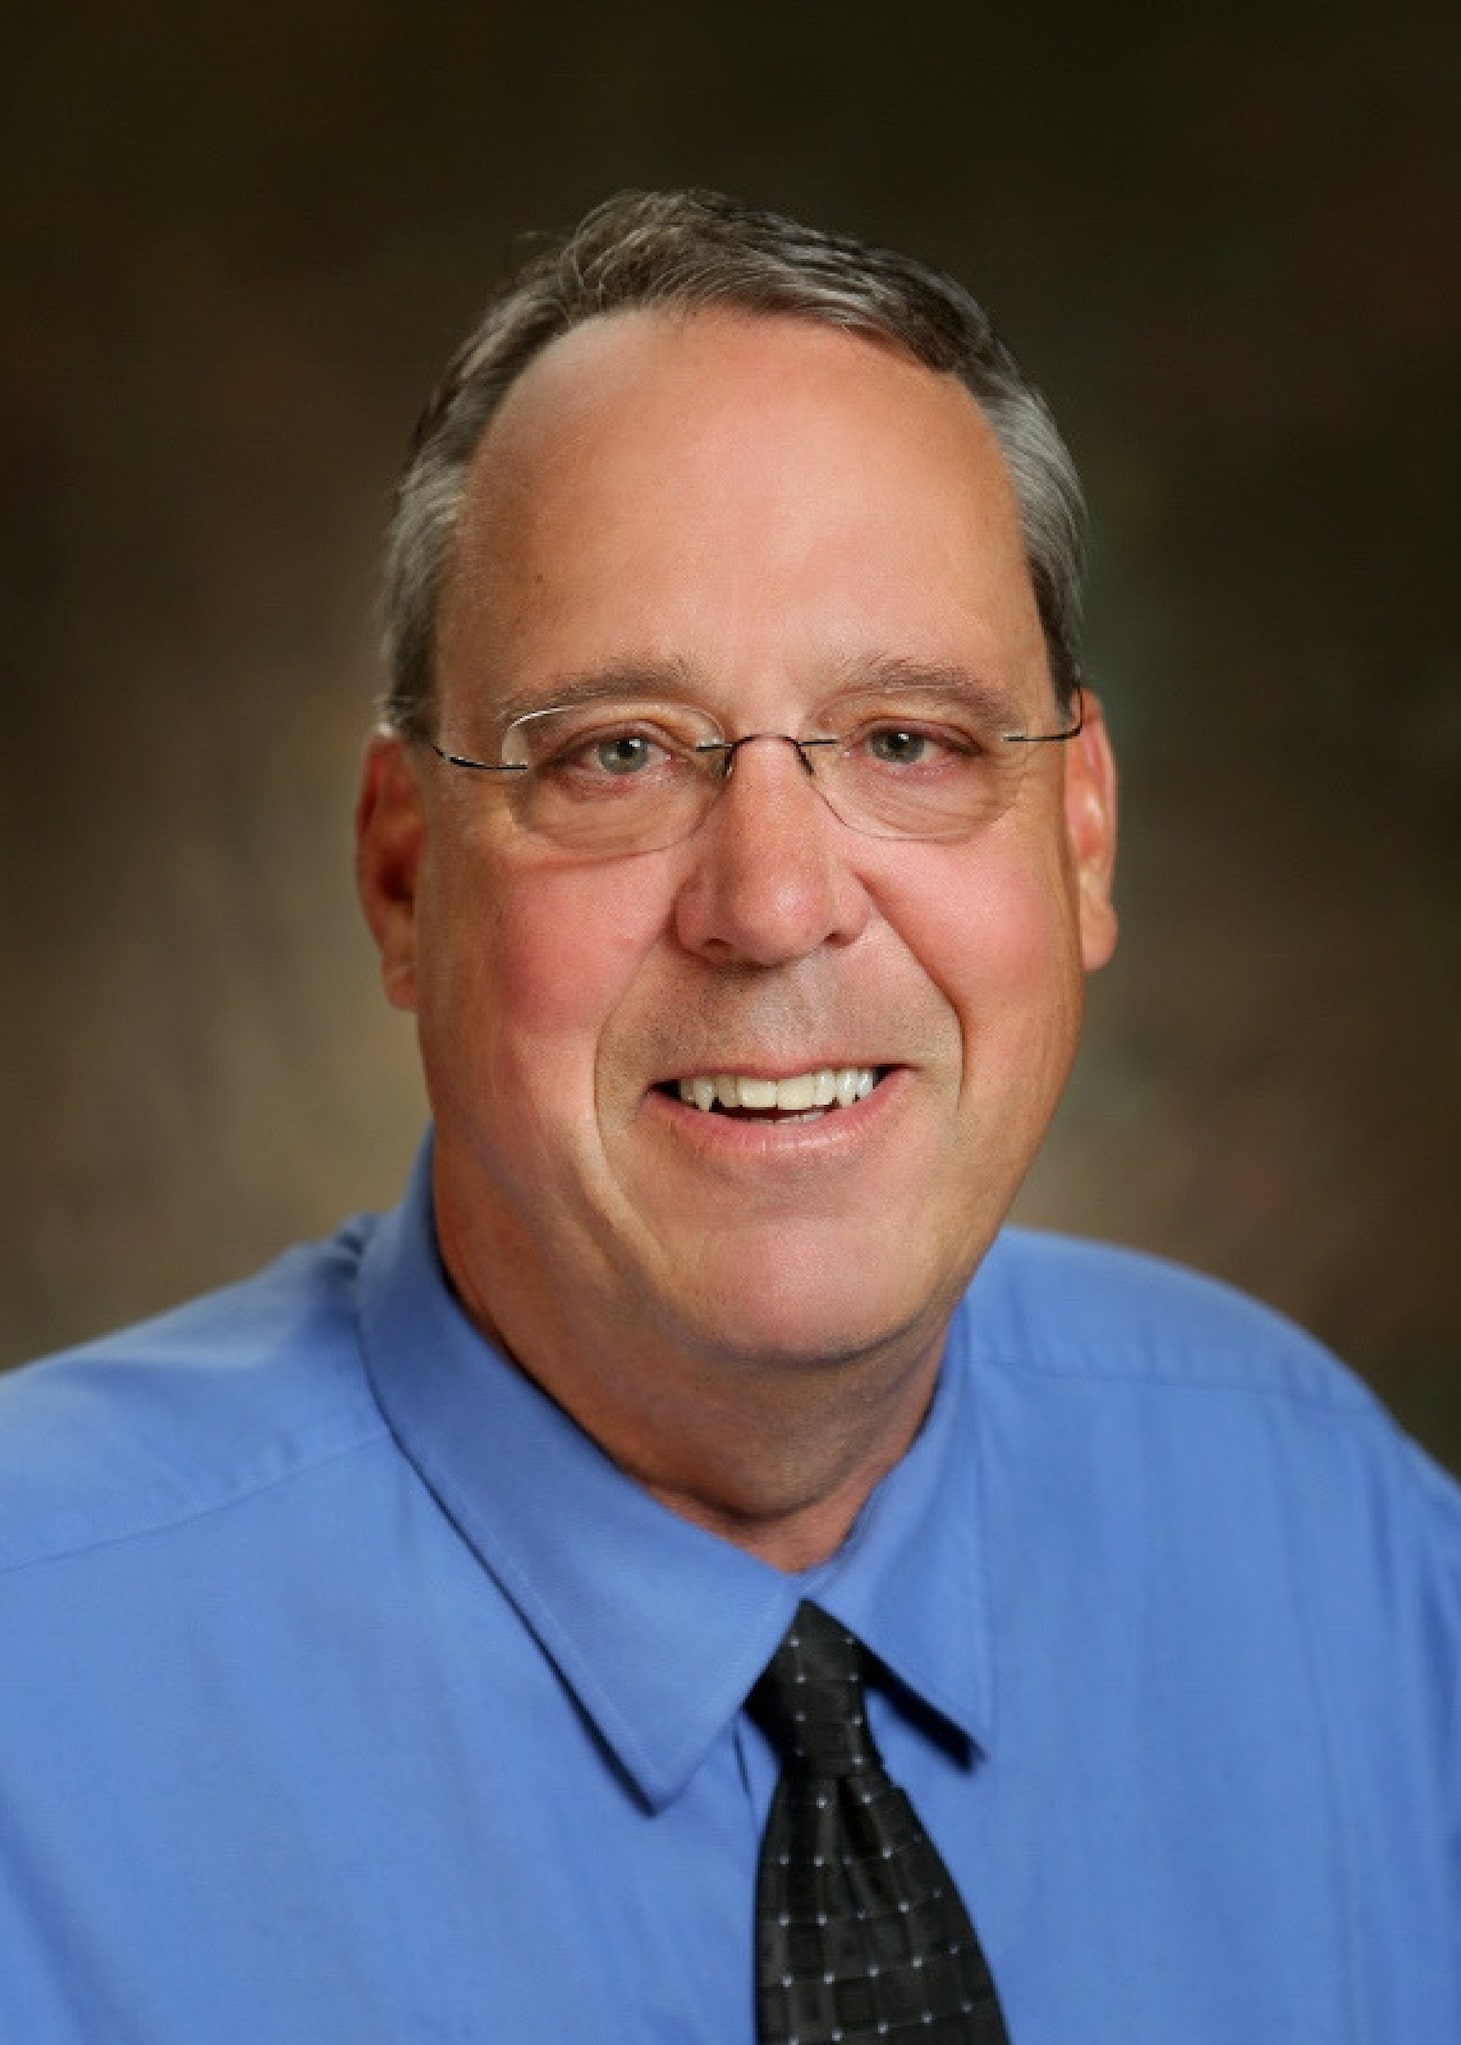 Bill Davis, Windermere, Real estate, Whidbey Island, Homes, Buy, Sell, Invest, Freeland, trusted realtor